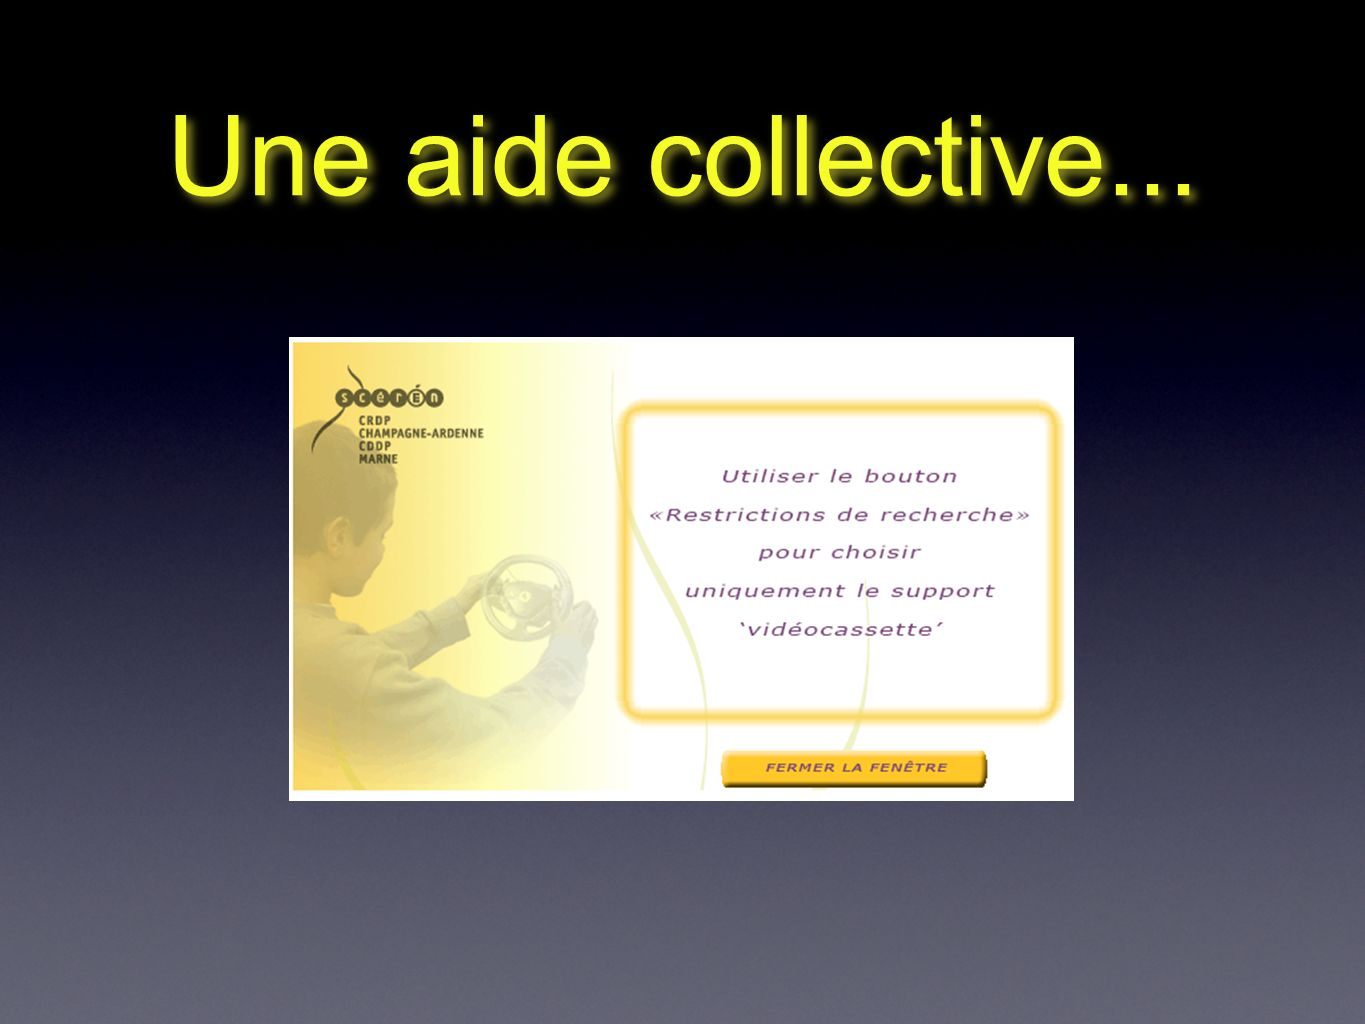 Une aide collective...